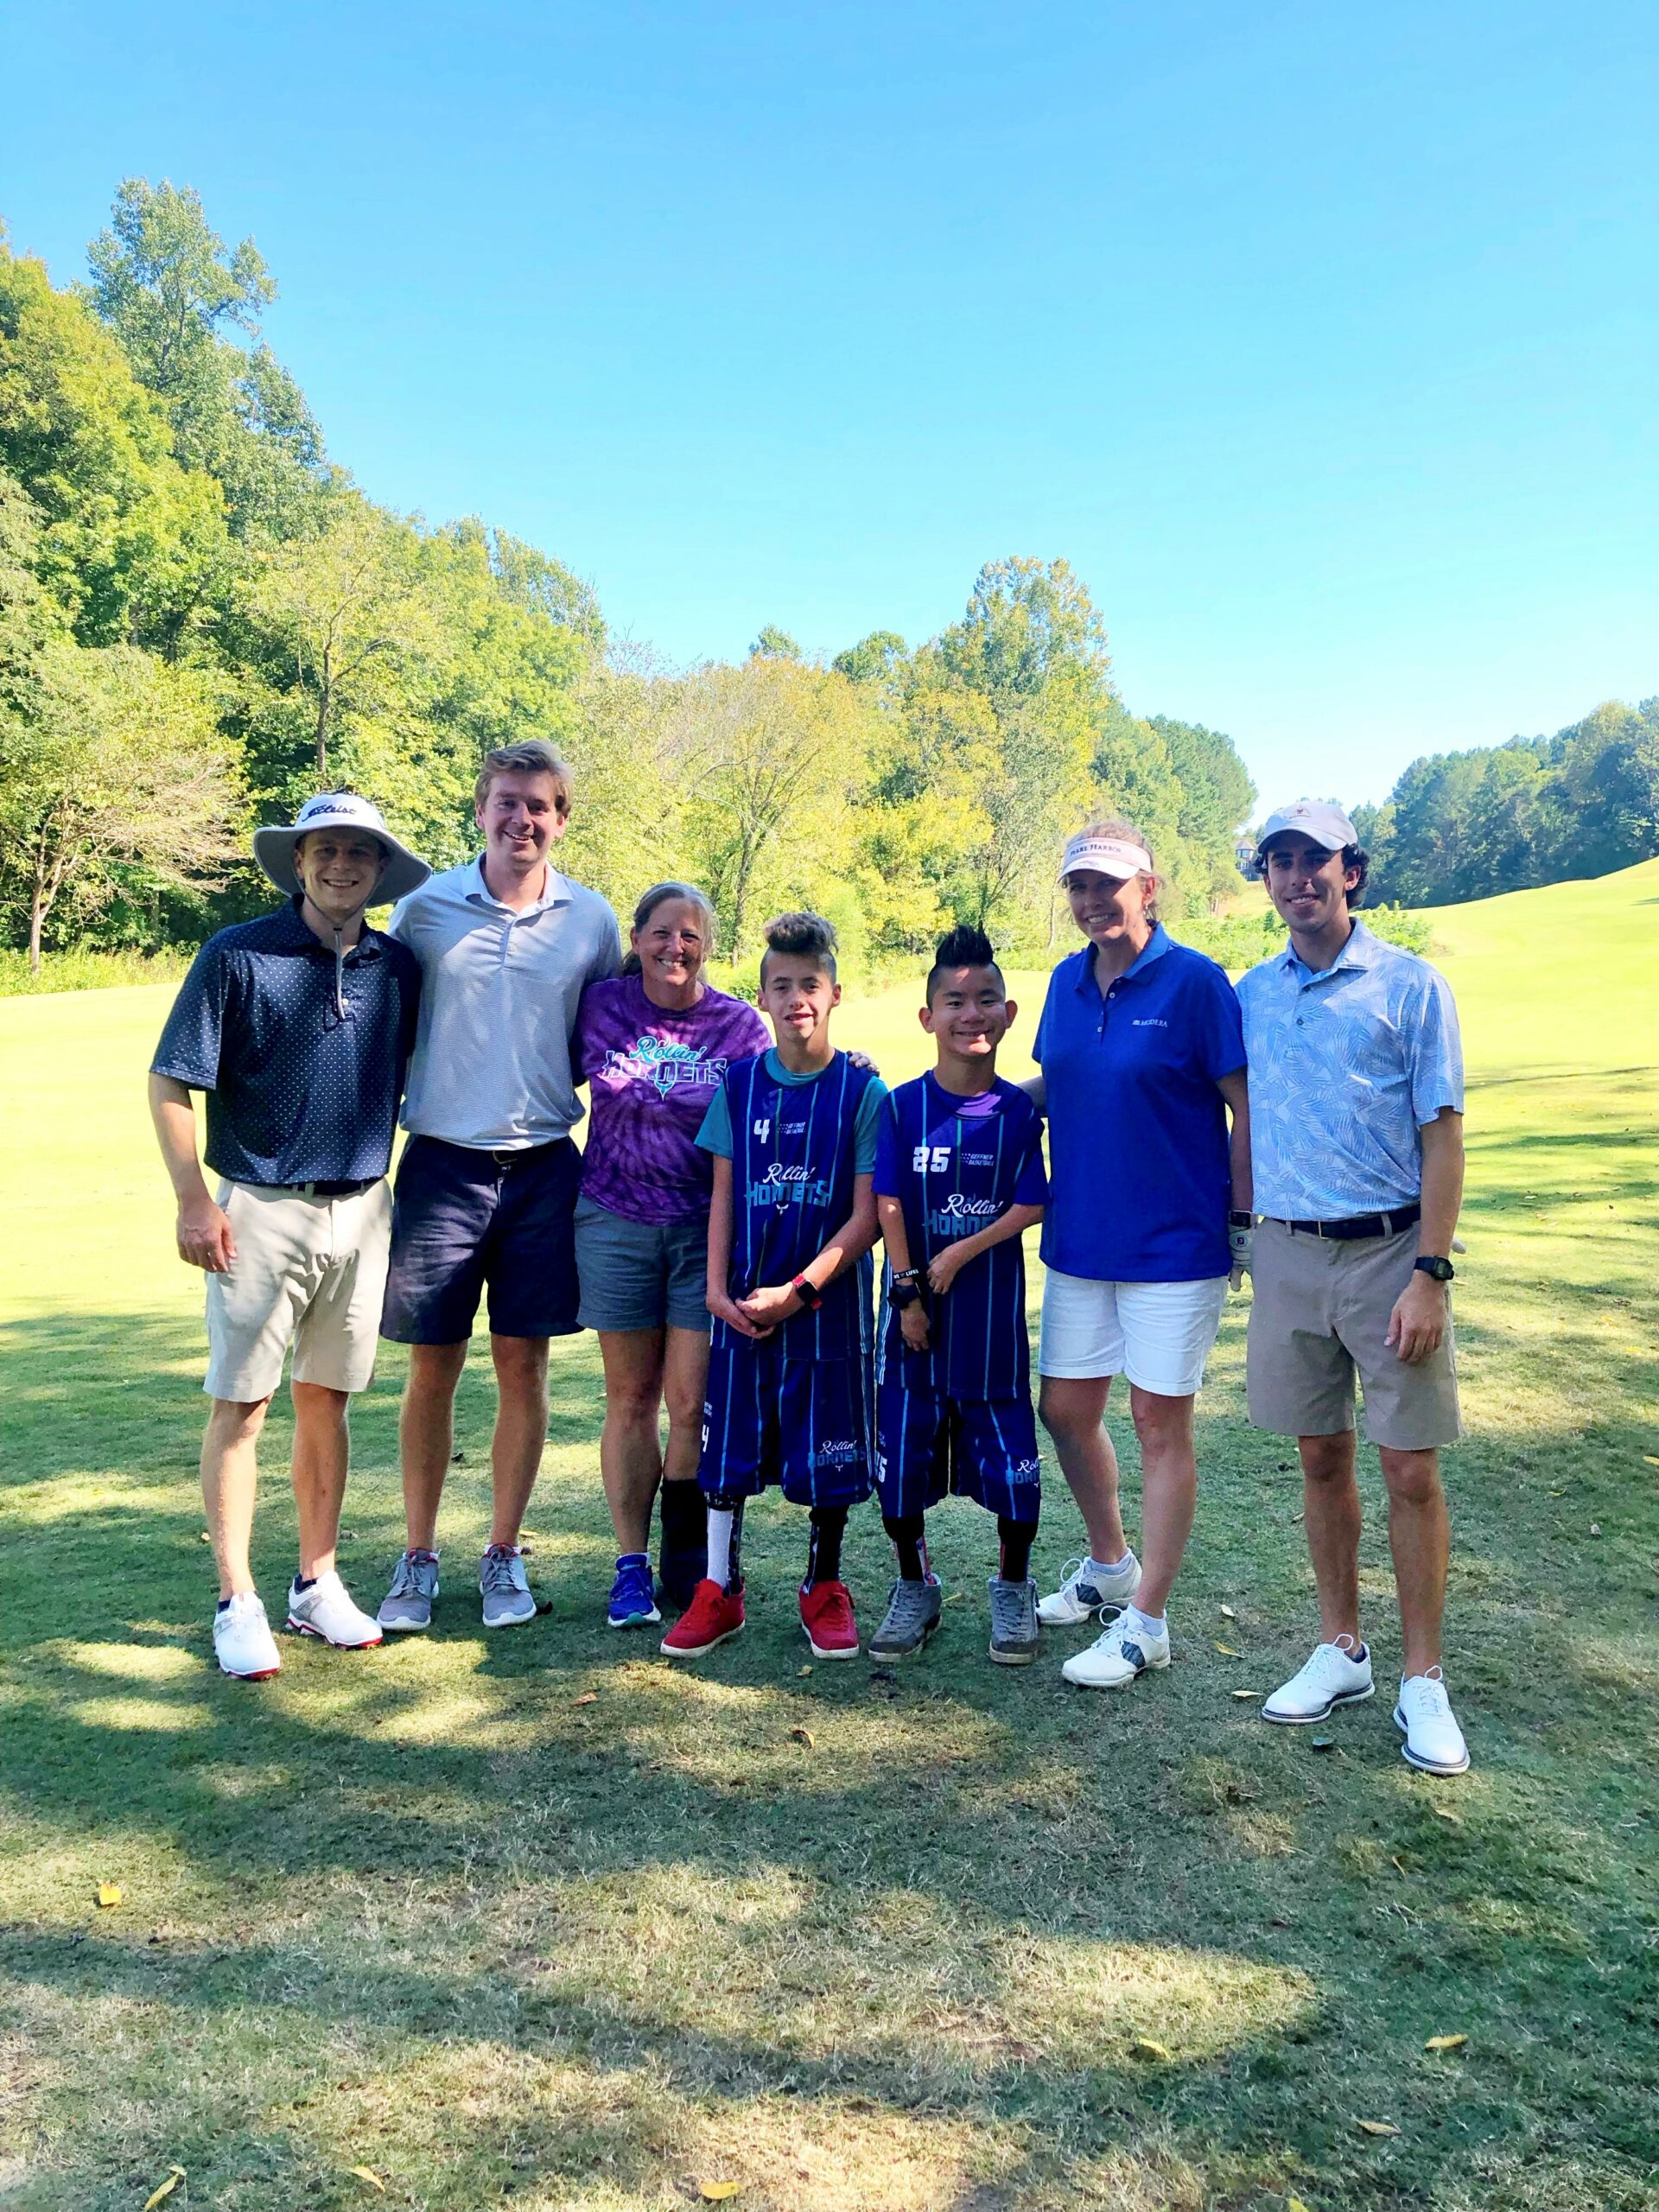 Dawson, Shane, Zach and Erica pose on the green with a couple of players from the Rollin Hornets Team and the event organizer